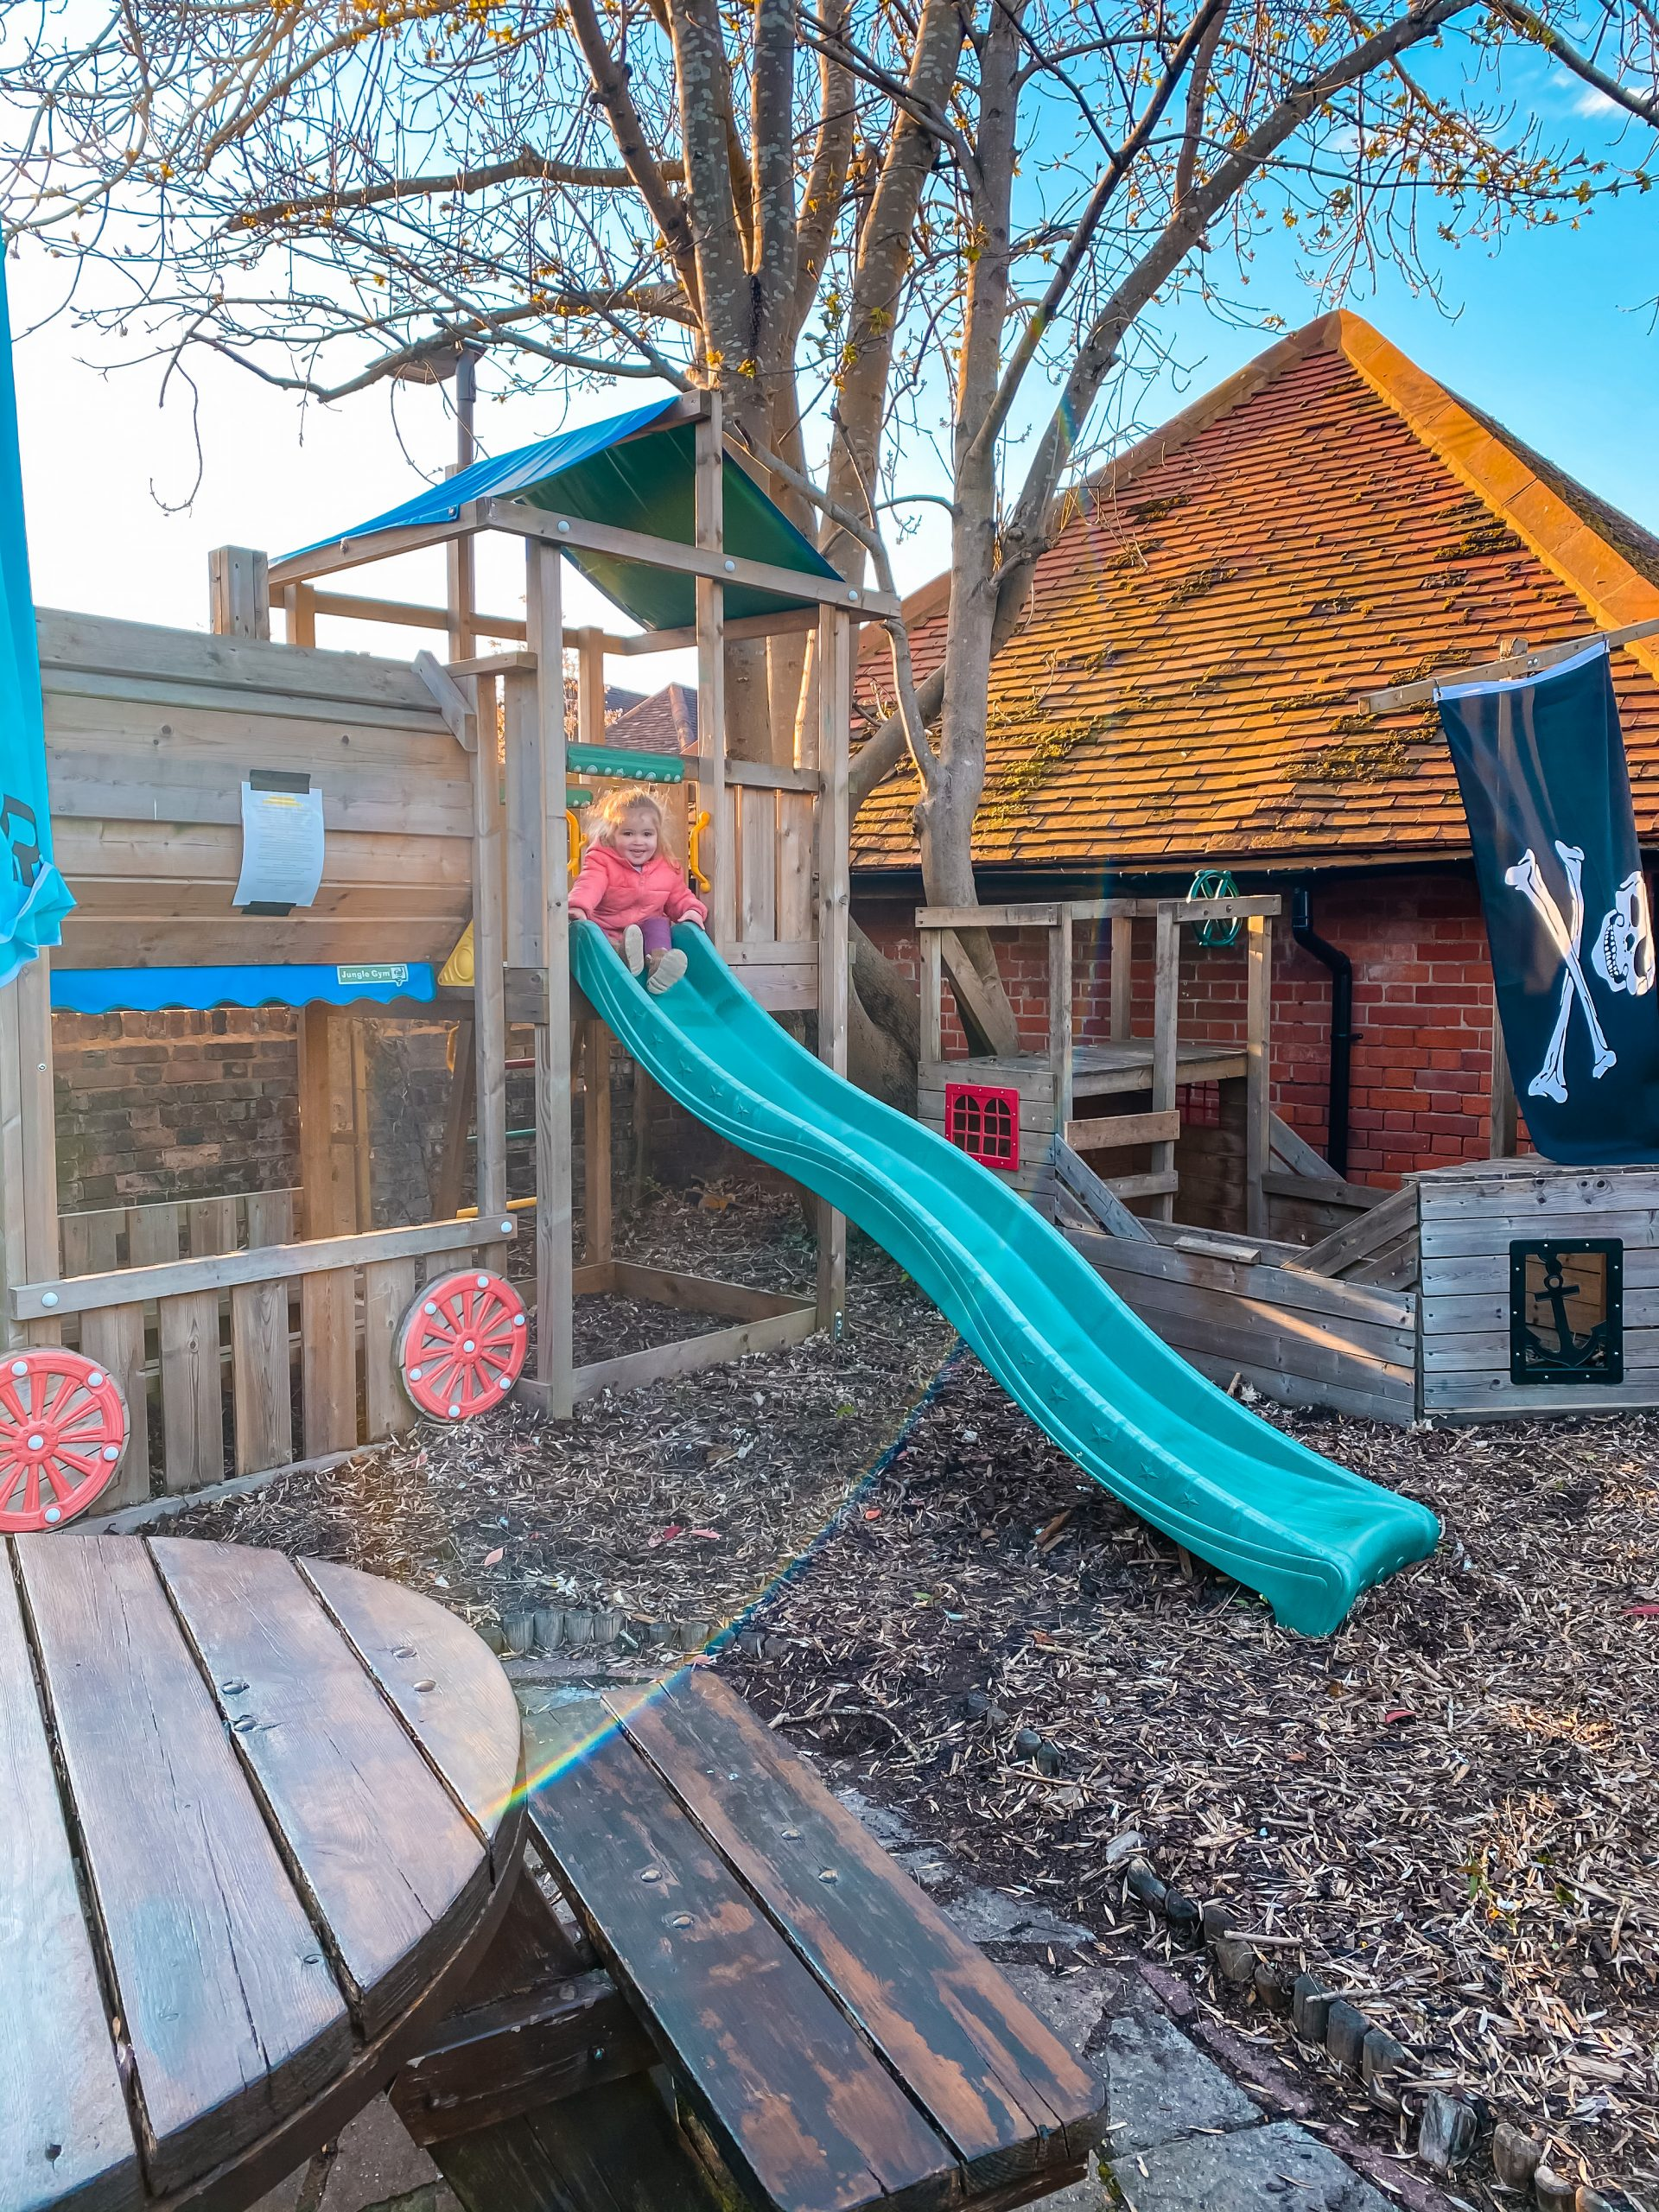 Play area at The Swan in Beaconsfield